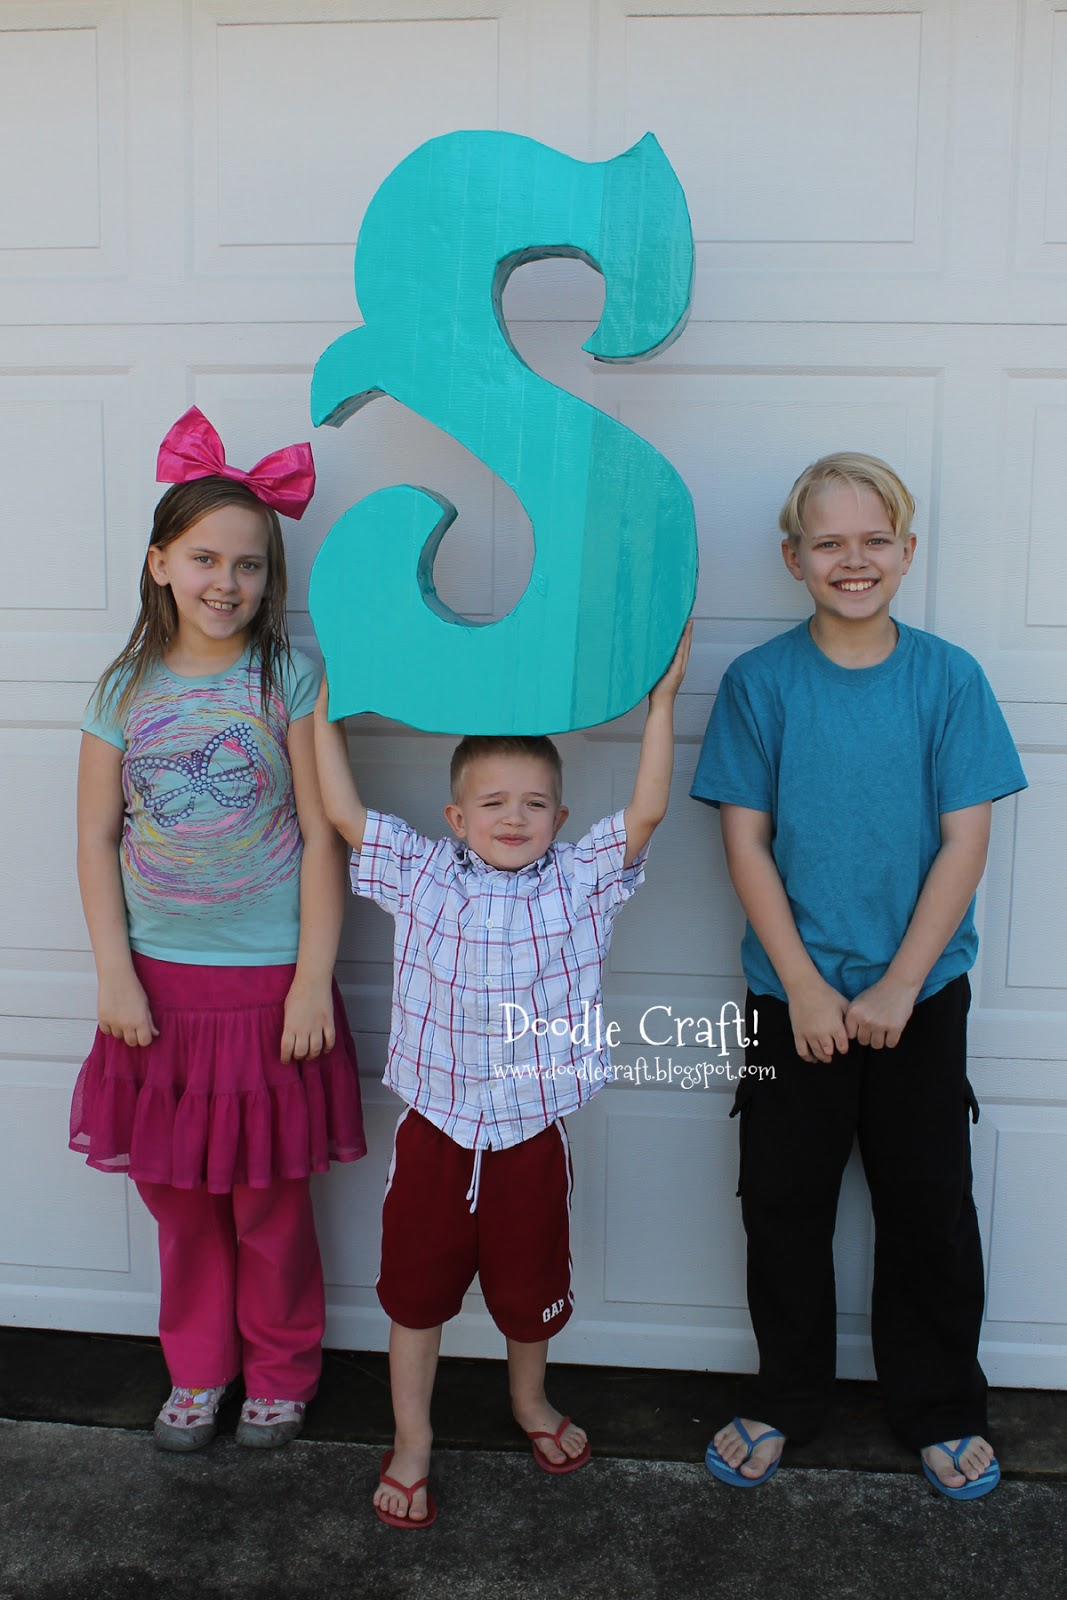 Doodlecraft diy ombre monogram s made from duct tape and for 3 foot cardboard letters